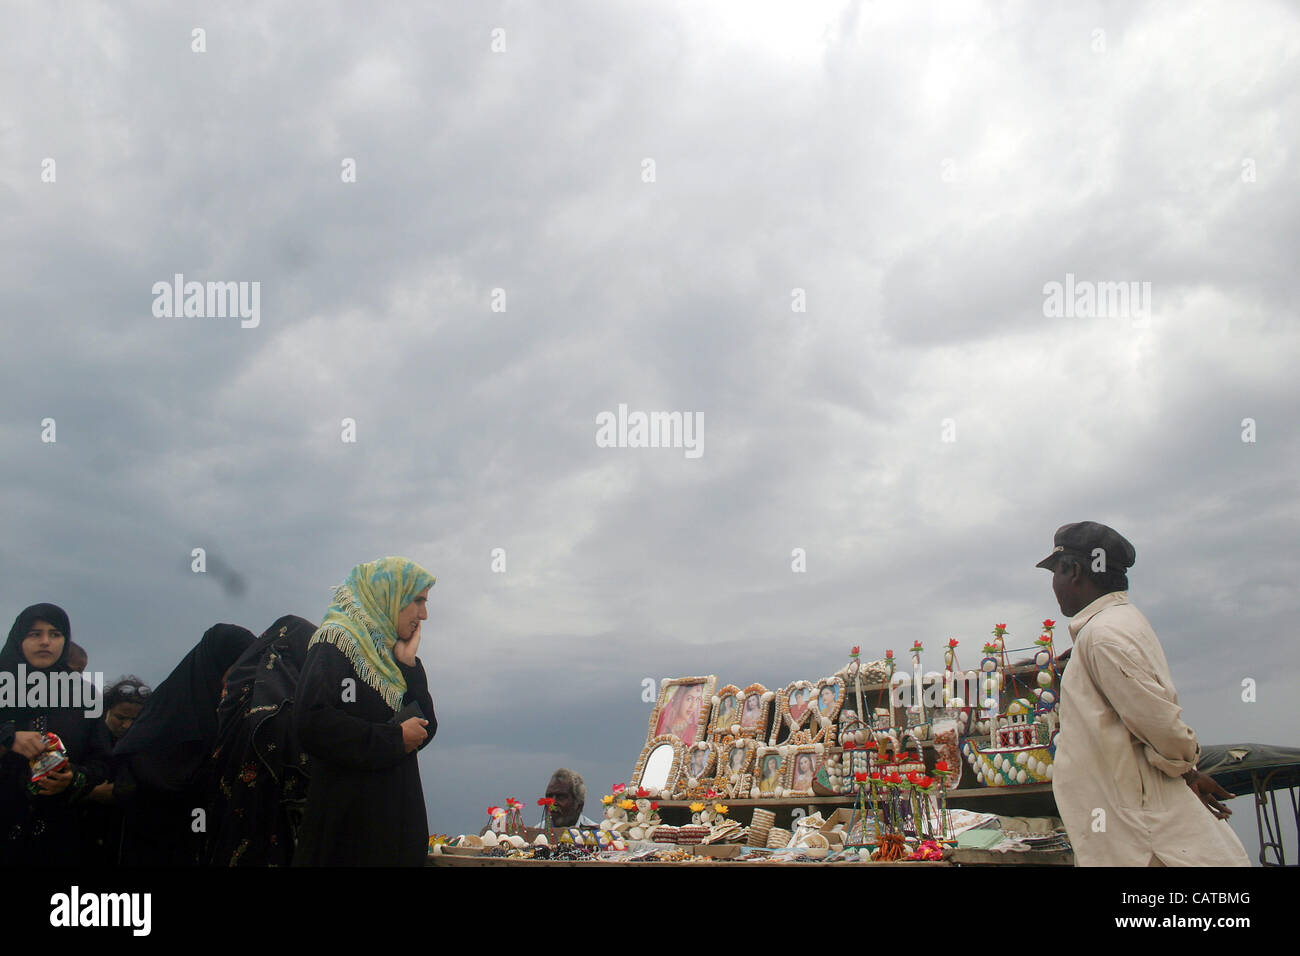 Women buy handmade home decoration items at stall while ...